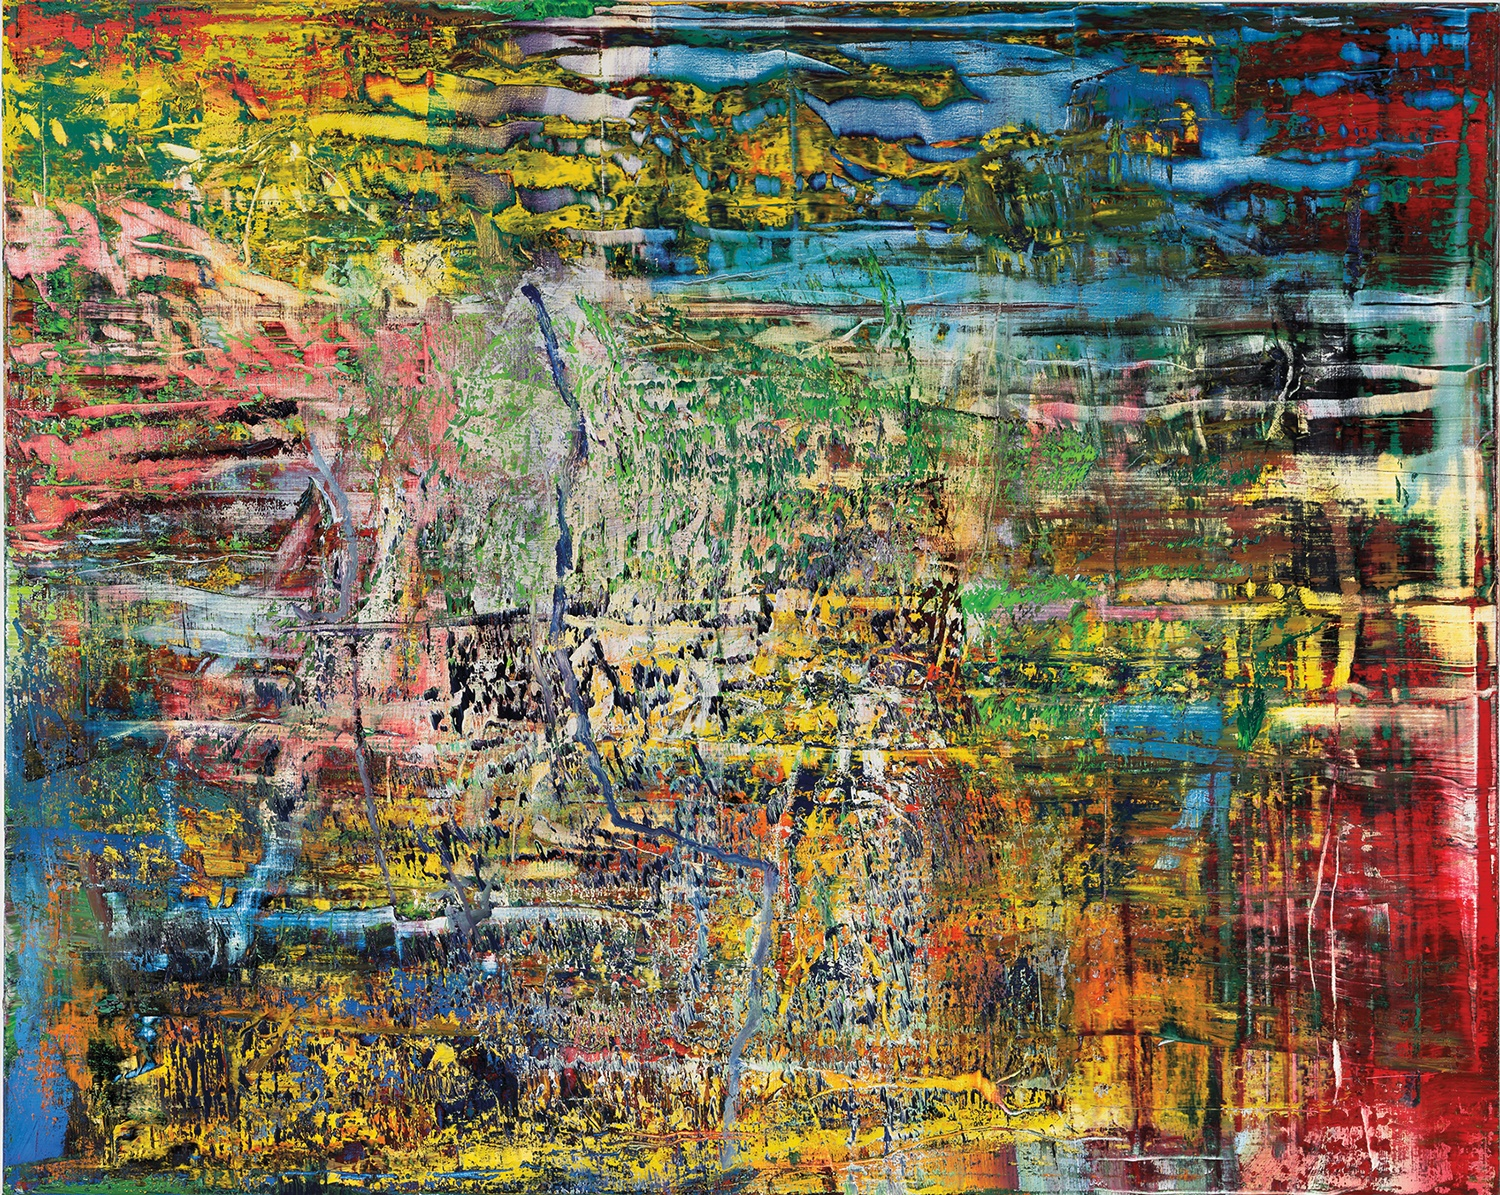 Gerhard Richter Abstract Painting, 016. Photo Gerhard Richter 2019